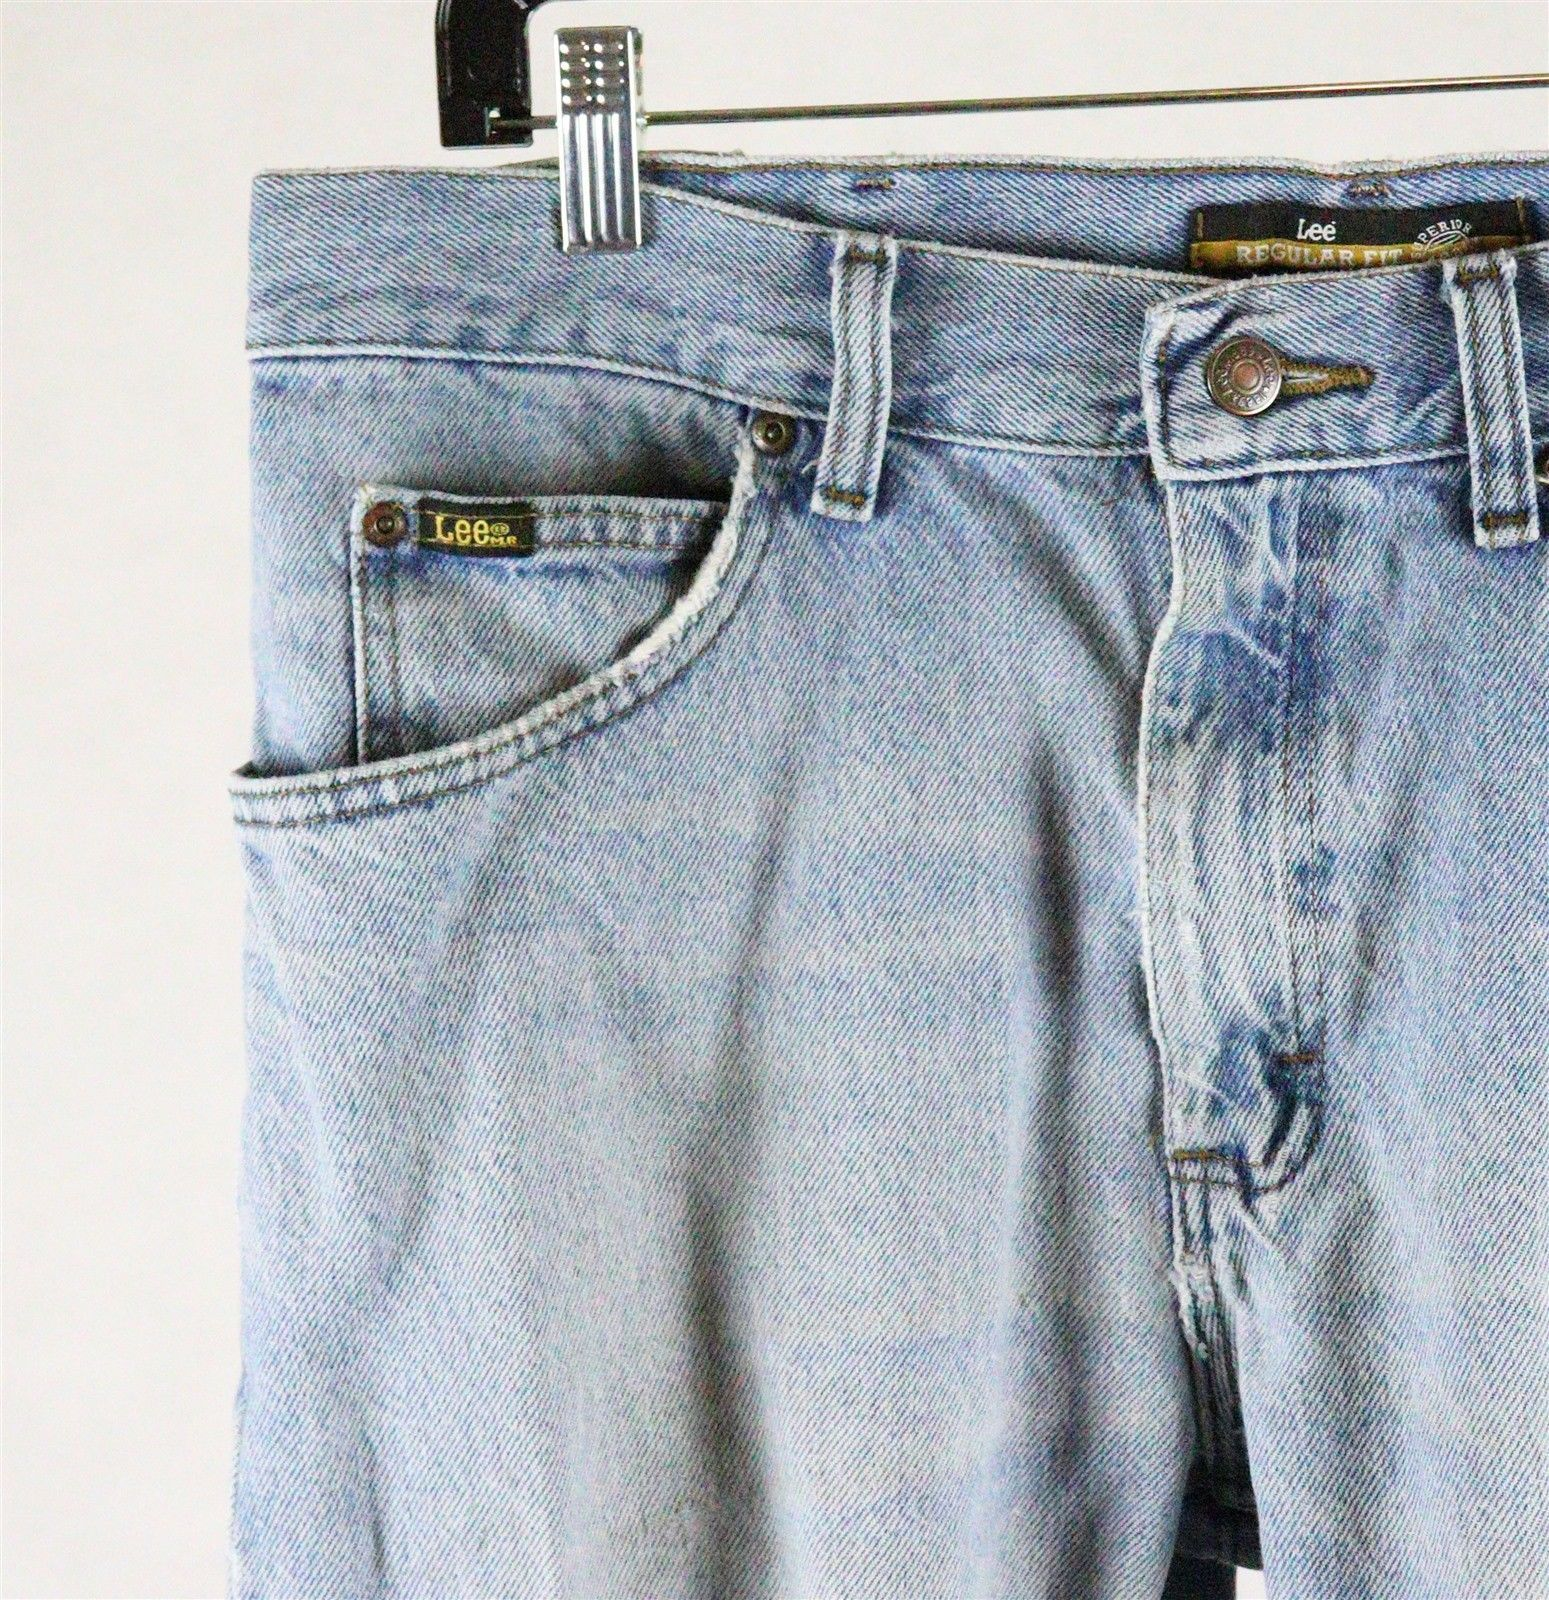 Lee Mens Regular Fit Straight Leg Destroyed Distressed Jeans Size 34 x 30